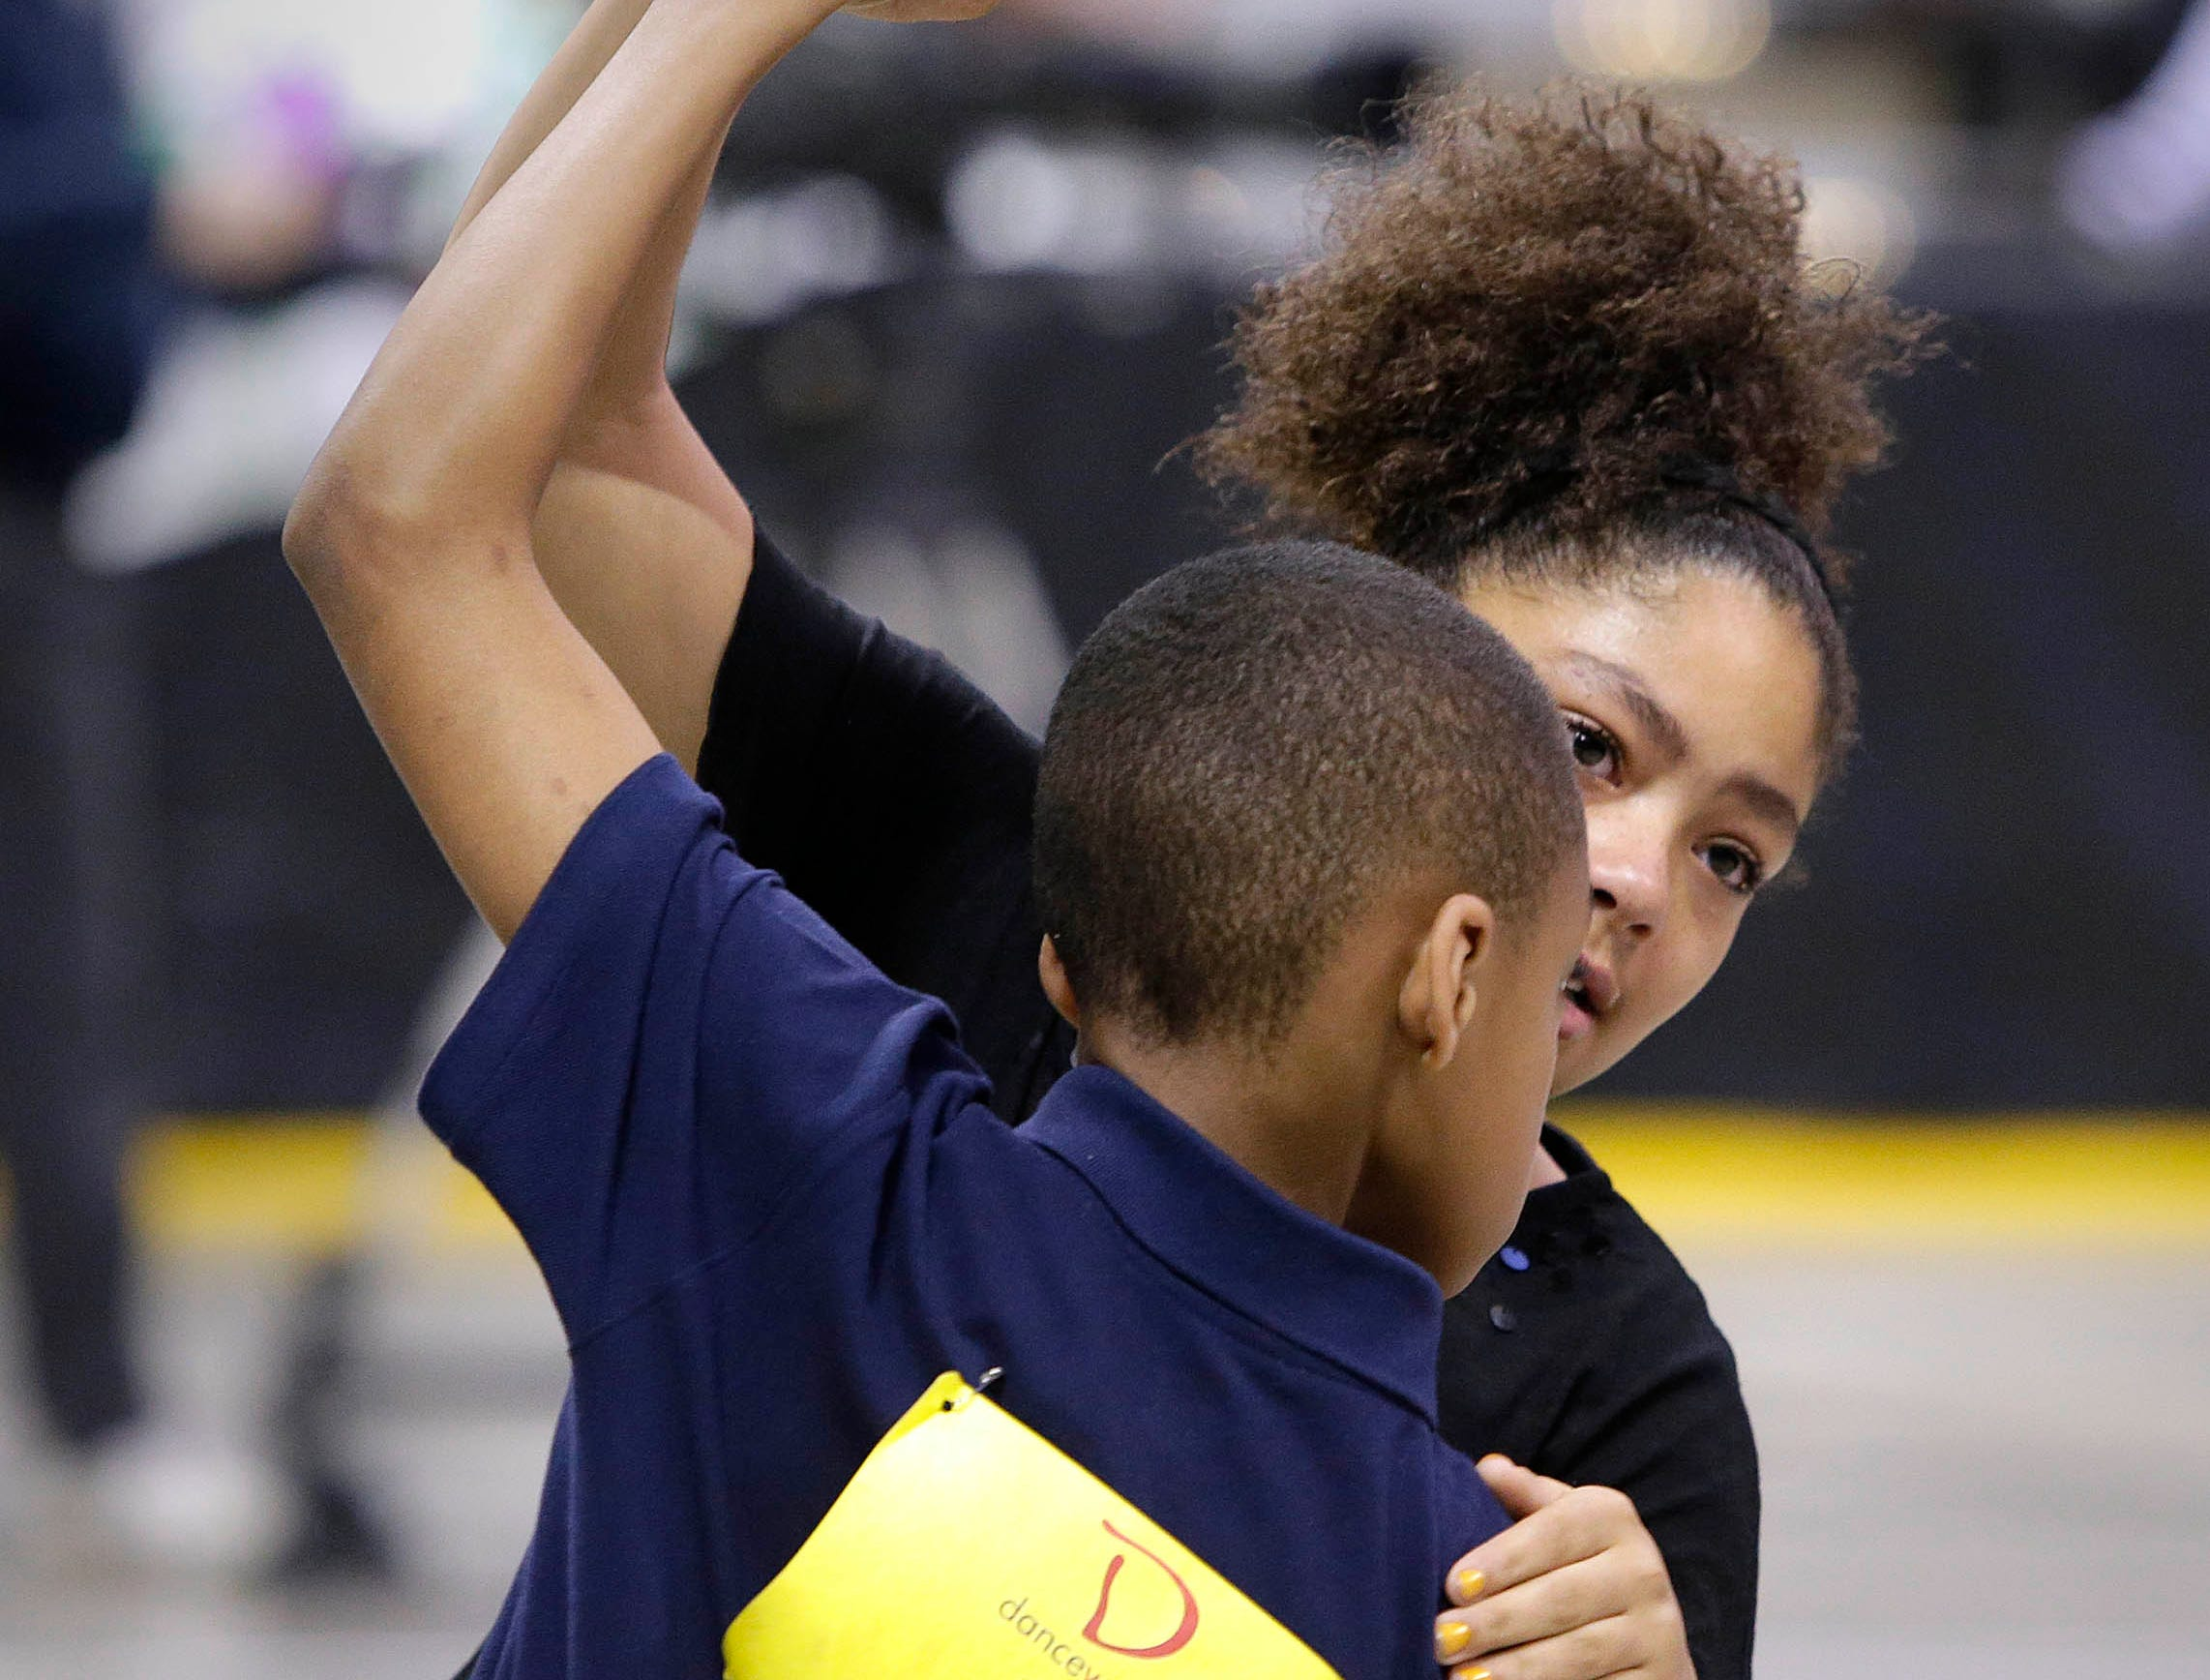 2015: Tiana Rowley  and Christopher Edwards, from Brown Street Academy,  perform in the annual Mad Hot Ballroom and Tap competition at the Bradley Center.